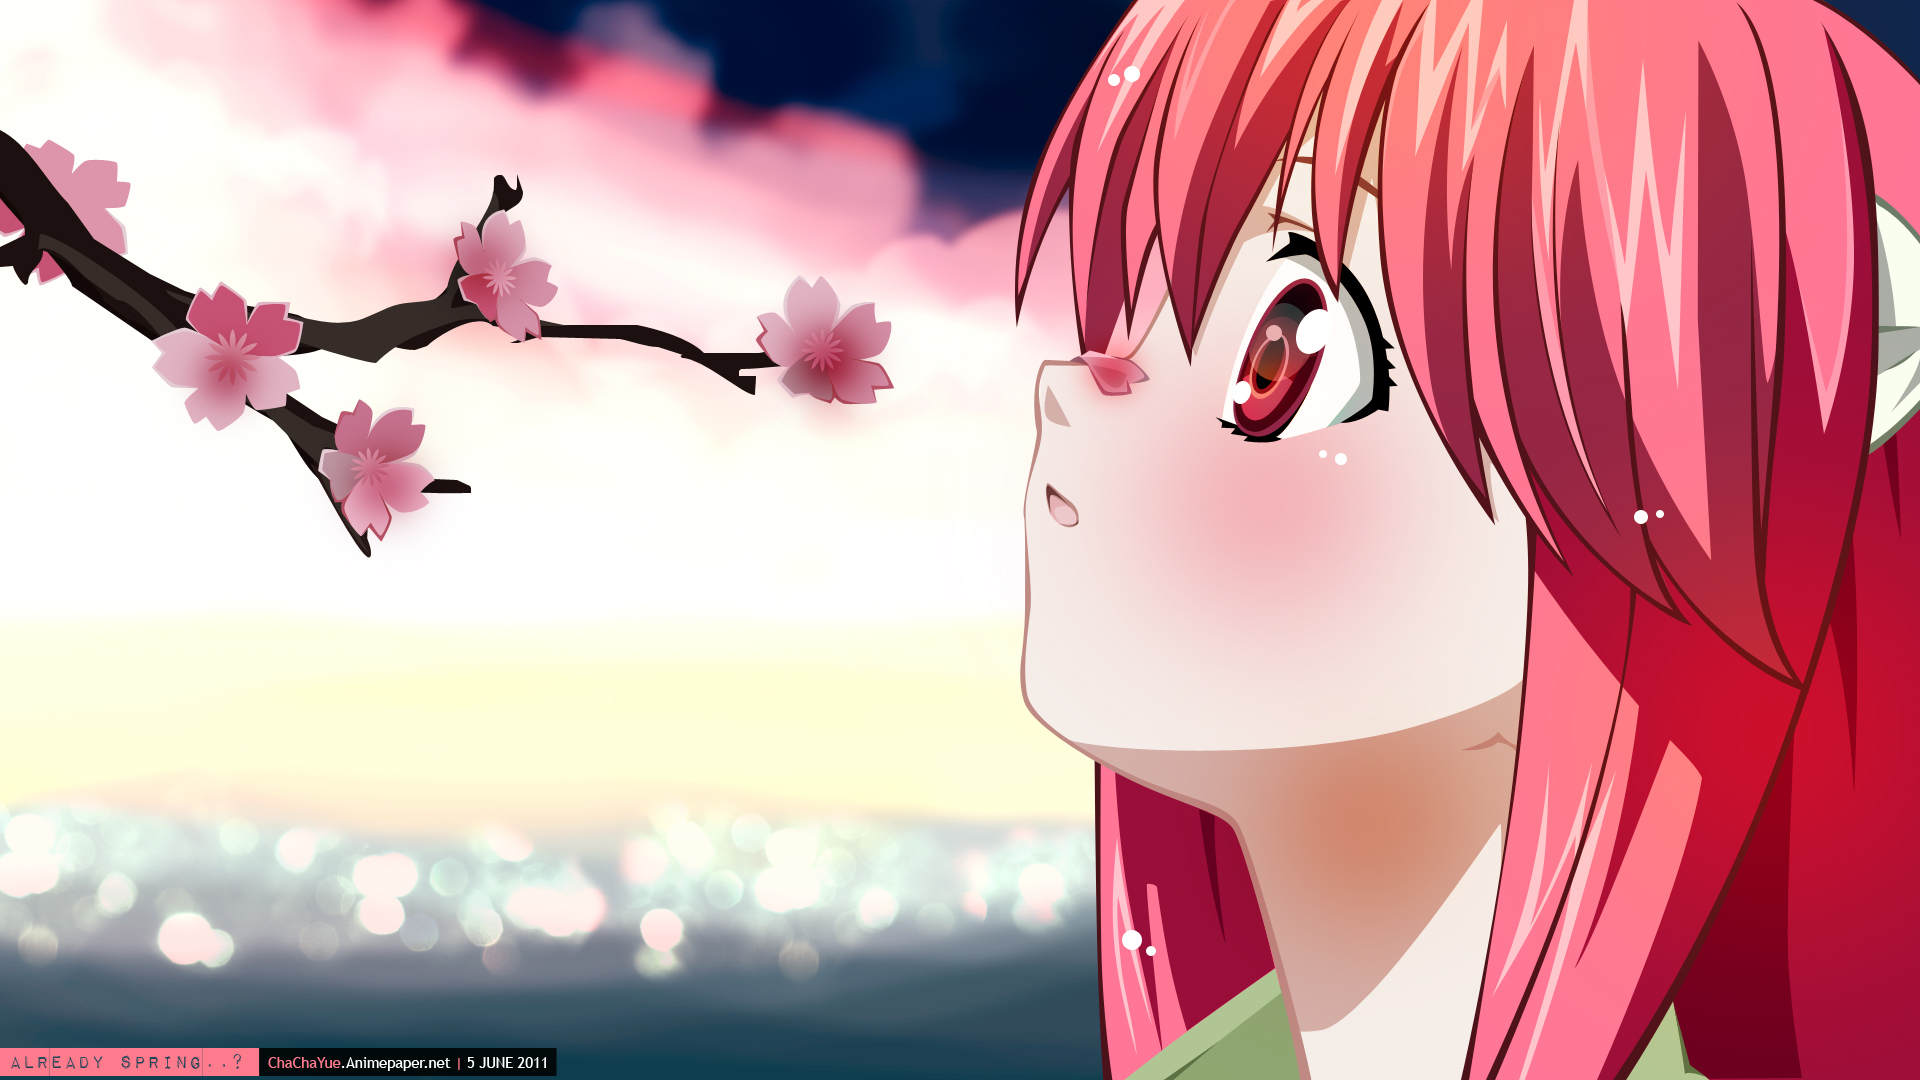 Elfen Lied Lucy Anime Anime Girls Series Fan Art Pink Hair Long Hair Bangs Horns Side View Red Eyes  1920x1080